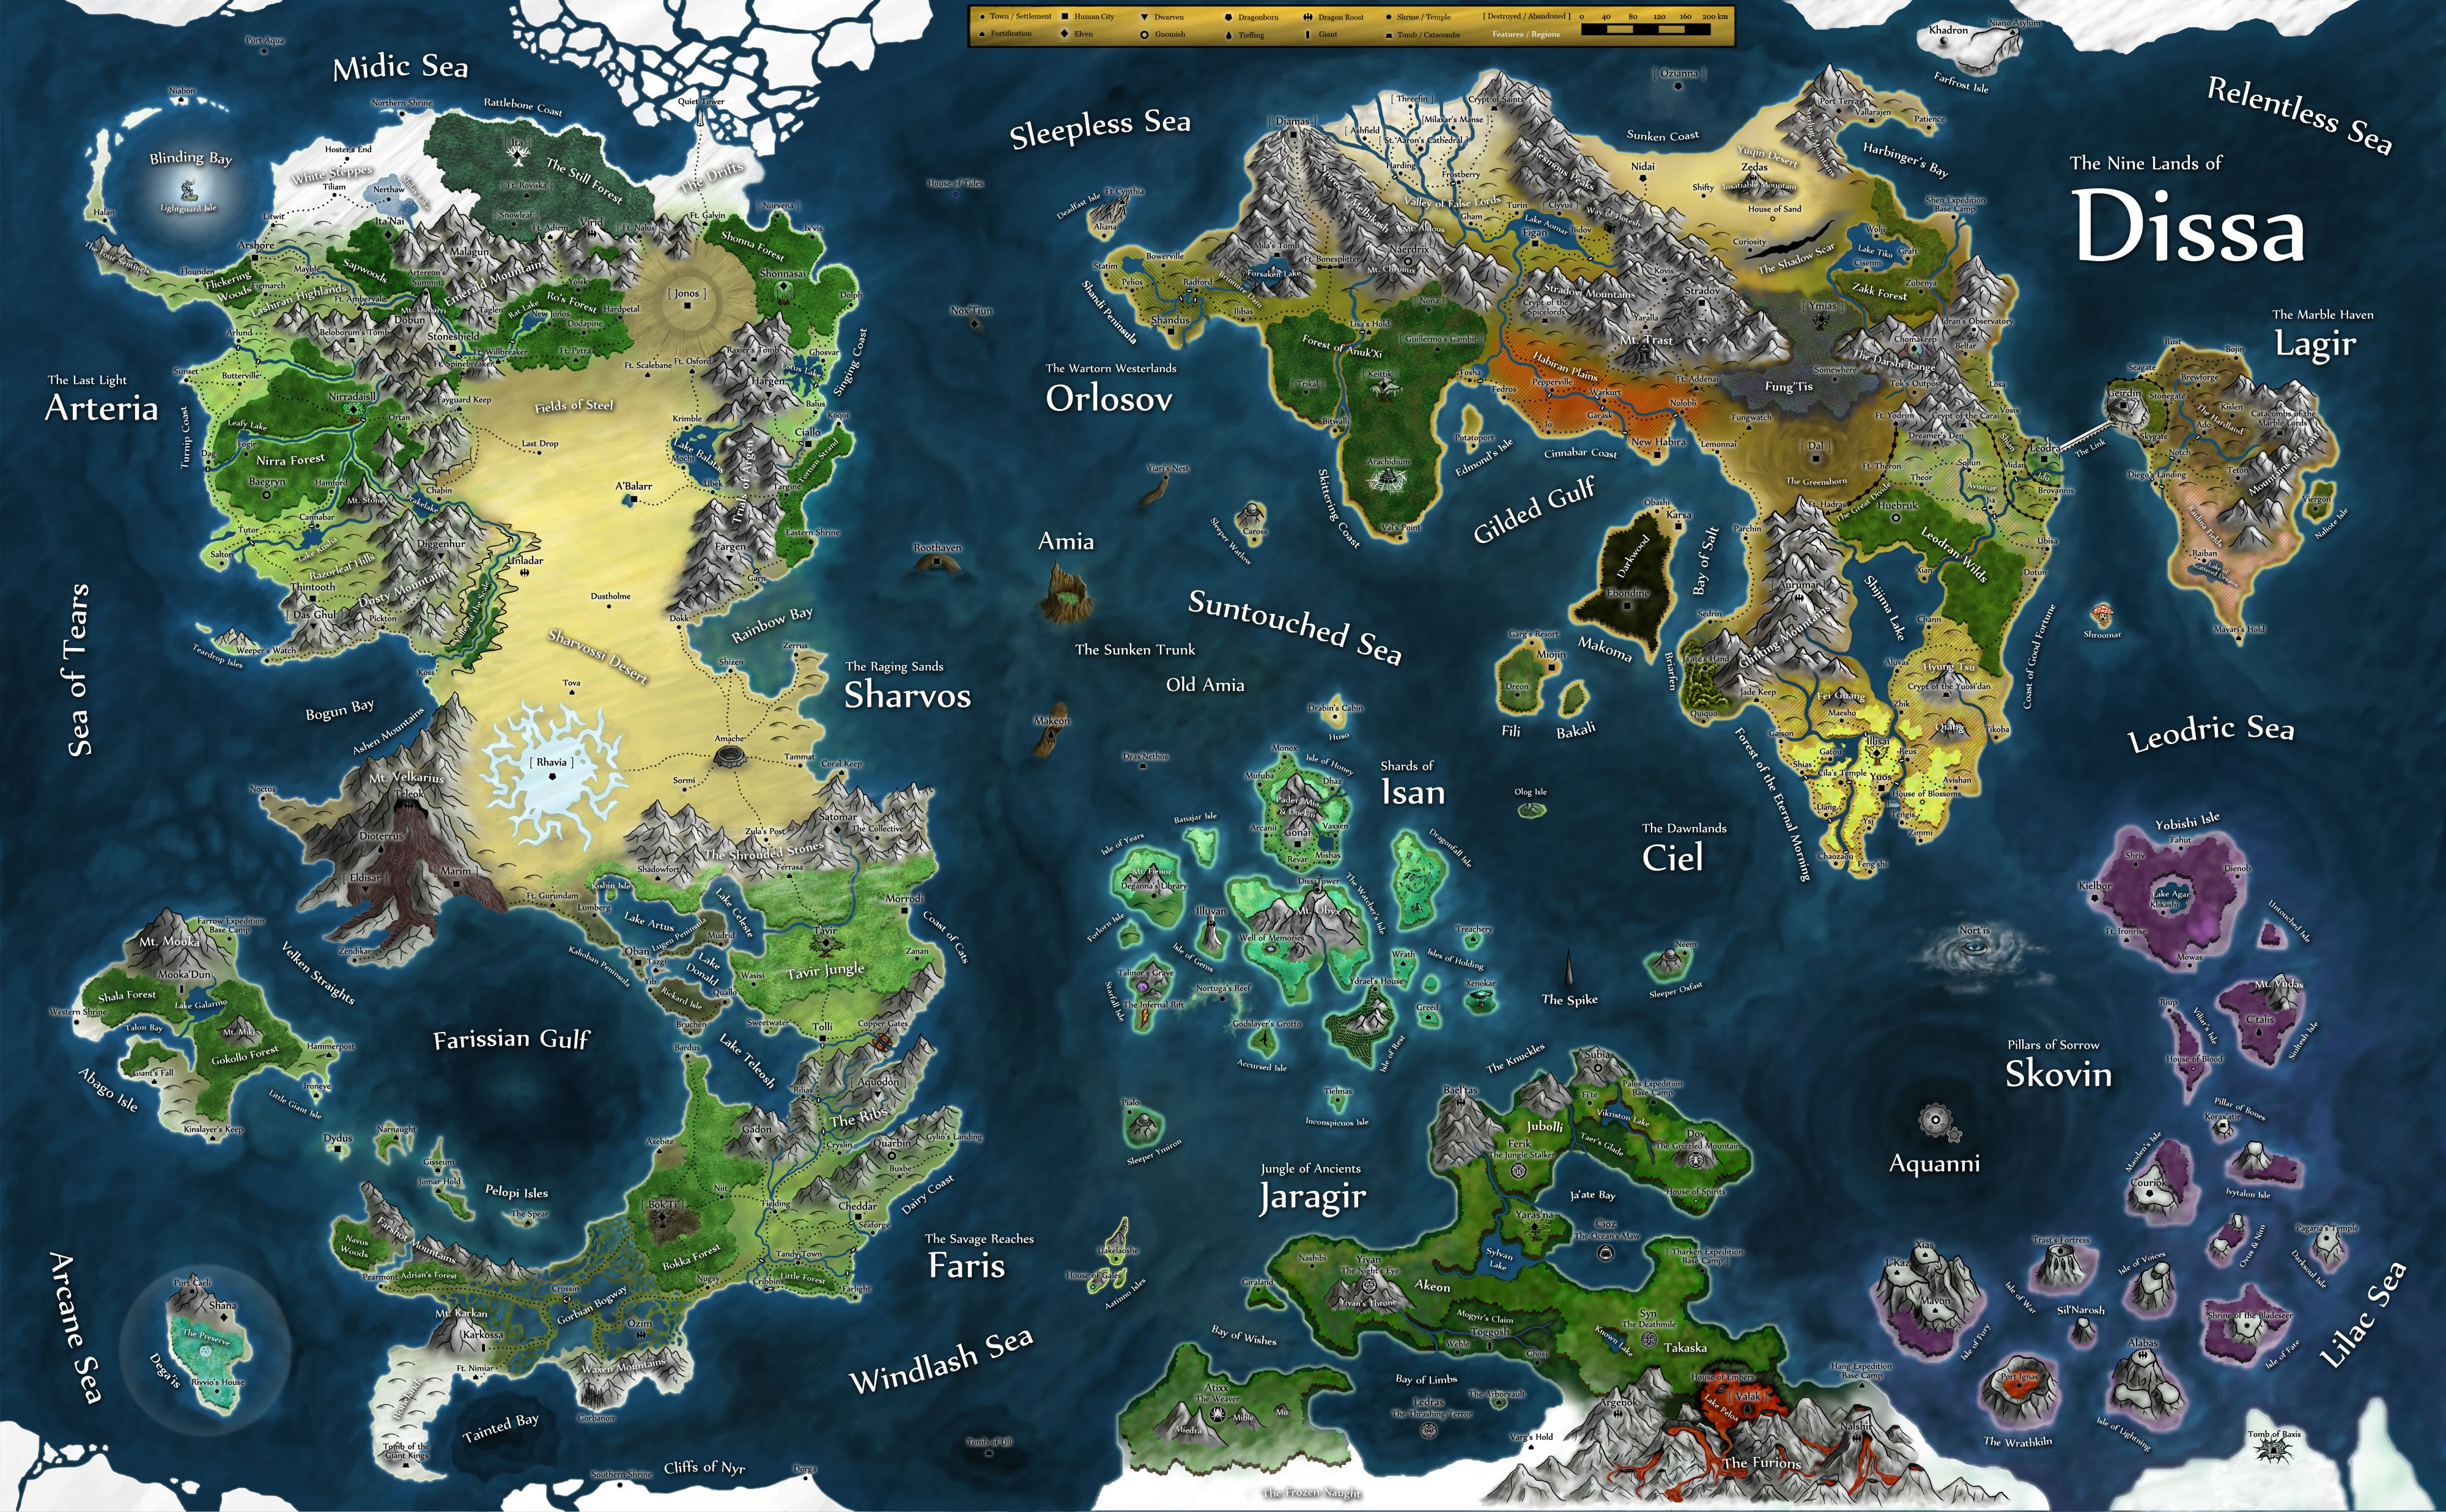 Thermal Map Of The World.Dissa By Sub Thermal D D Maps Pinterest Fantasy Map Map And Rpg